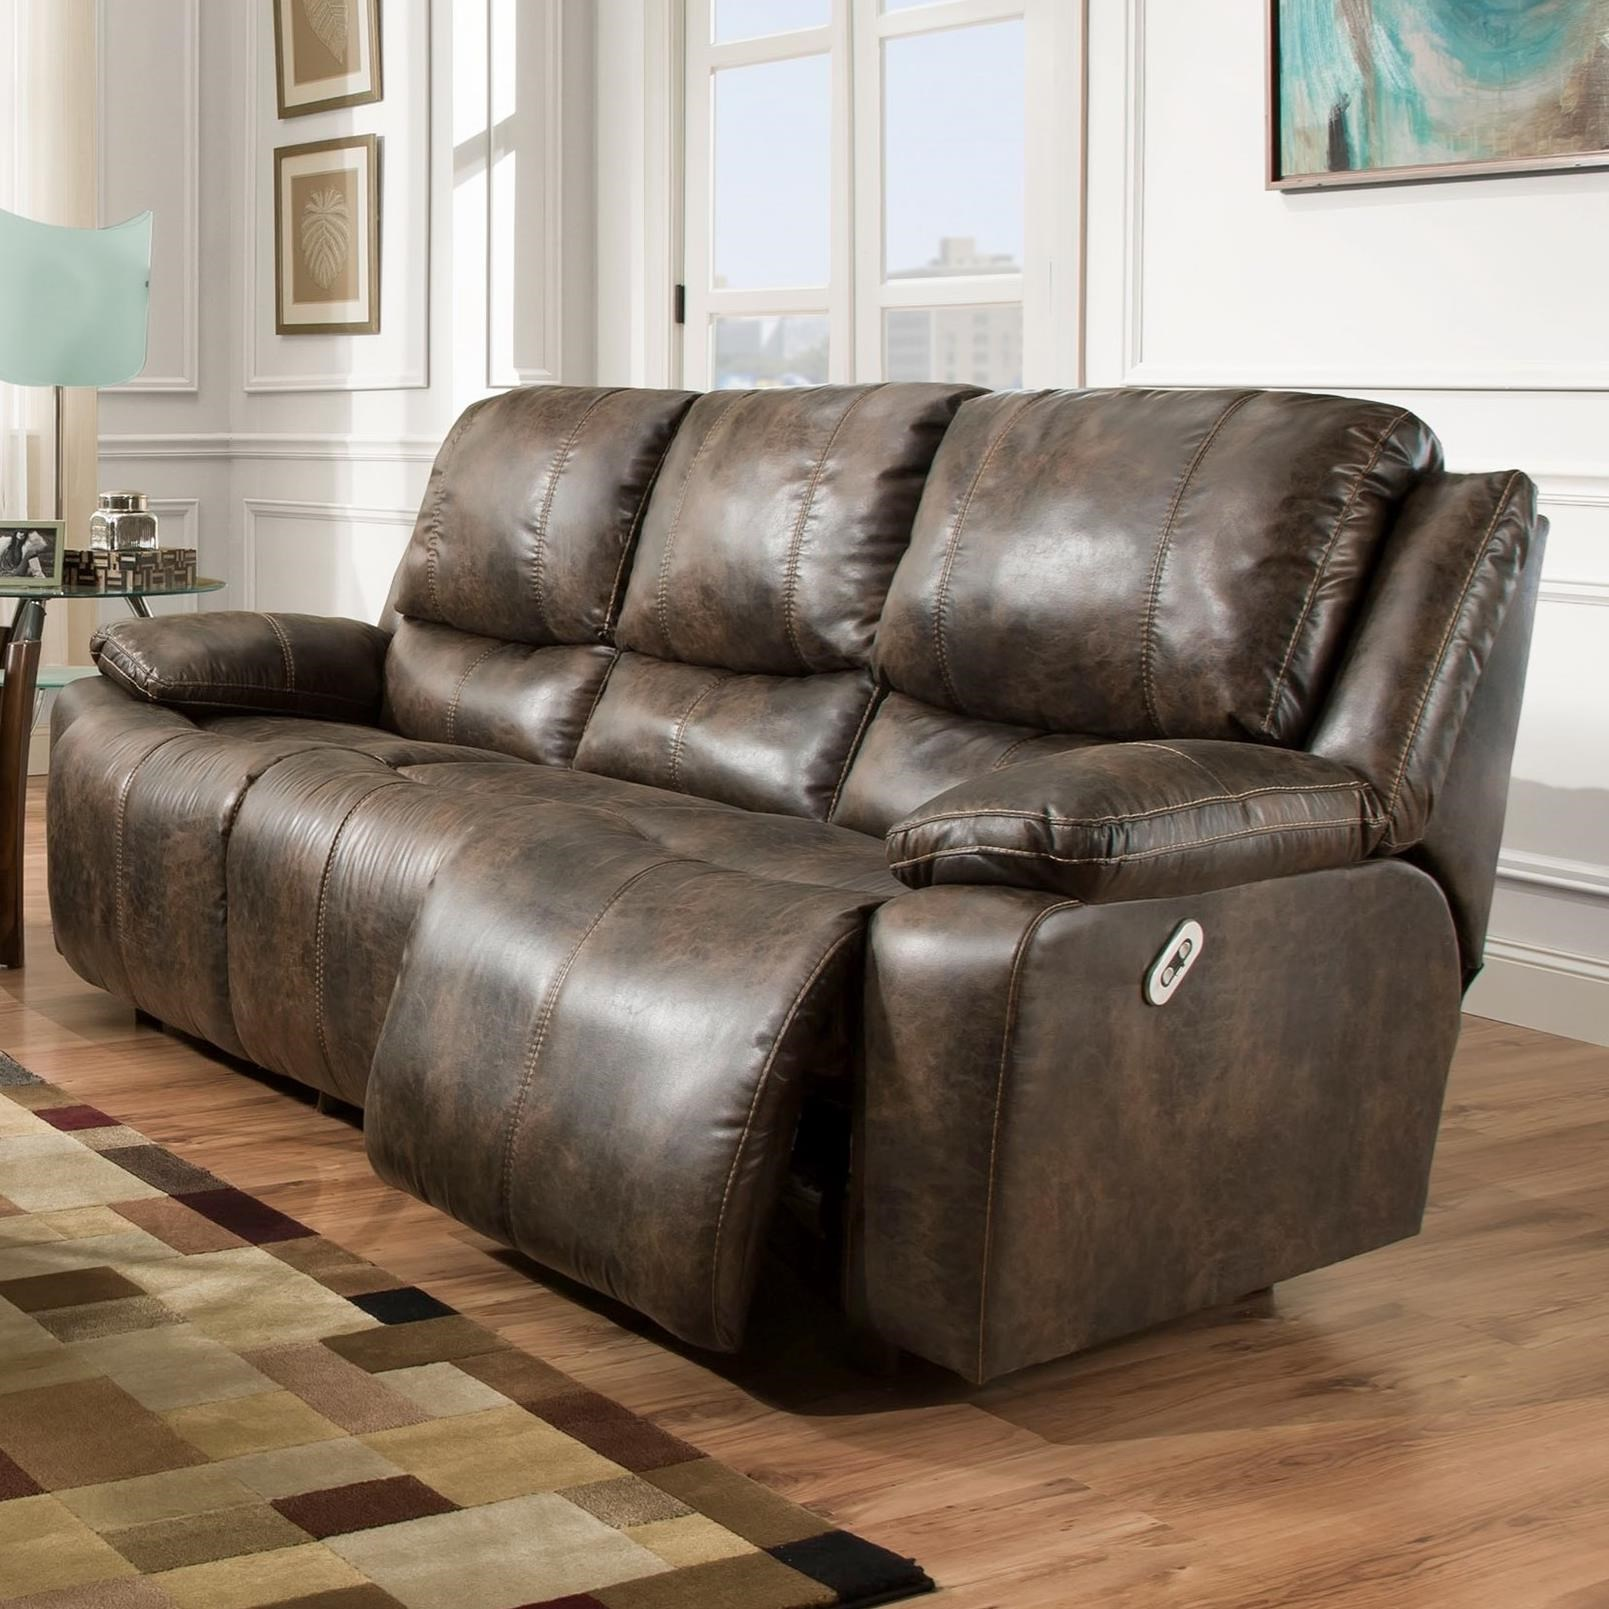 Franklin MontanaPower Reclining Sofa With Power Backrest ...